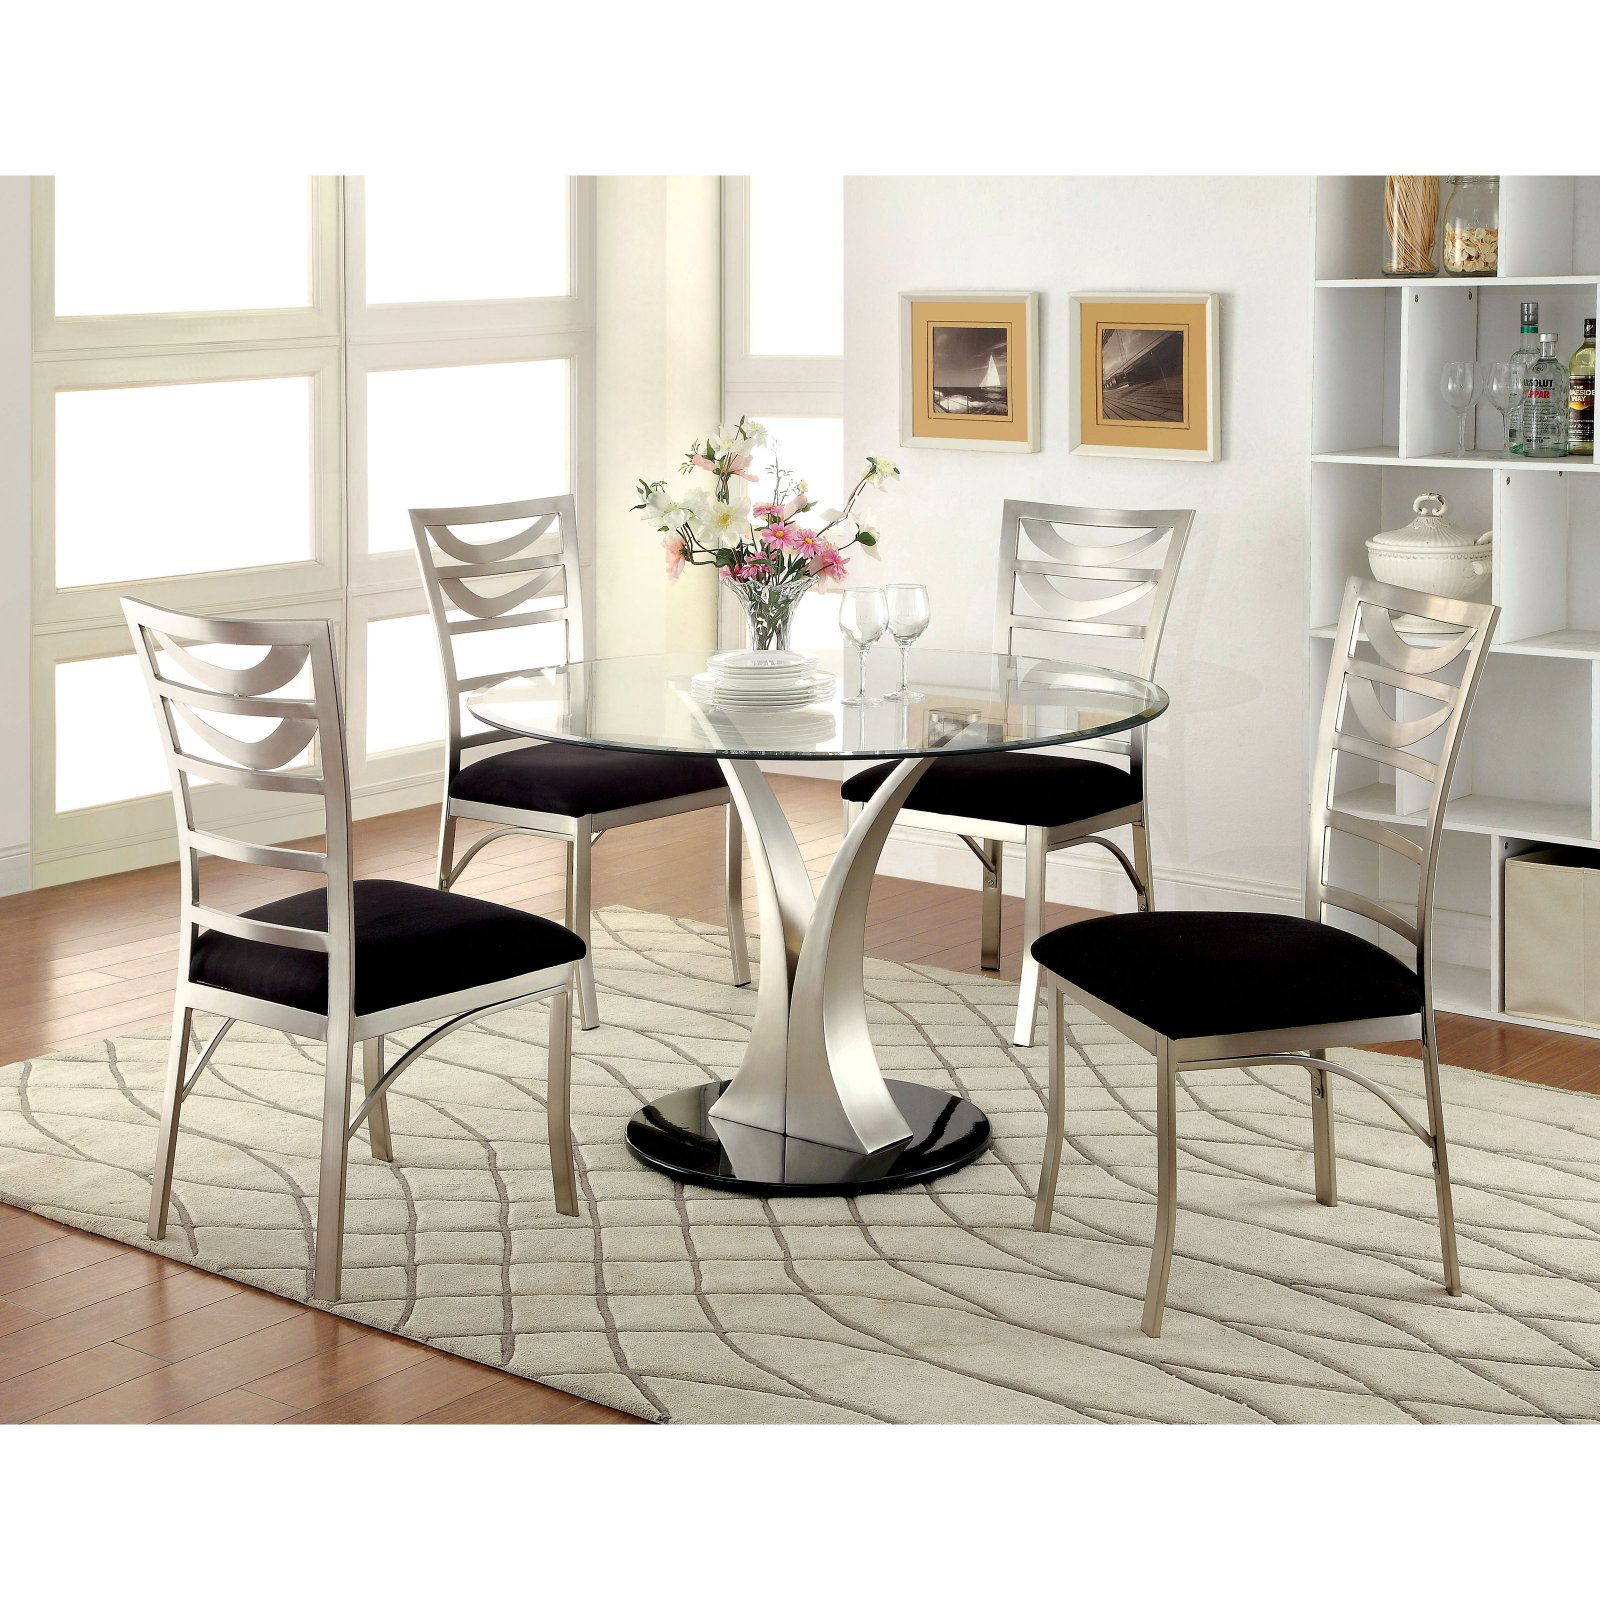 Furniture of America Sparling Contemporary 5 Piece Dining Table Set with Ladderback Chairs